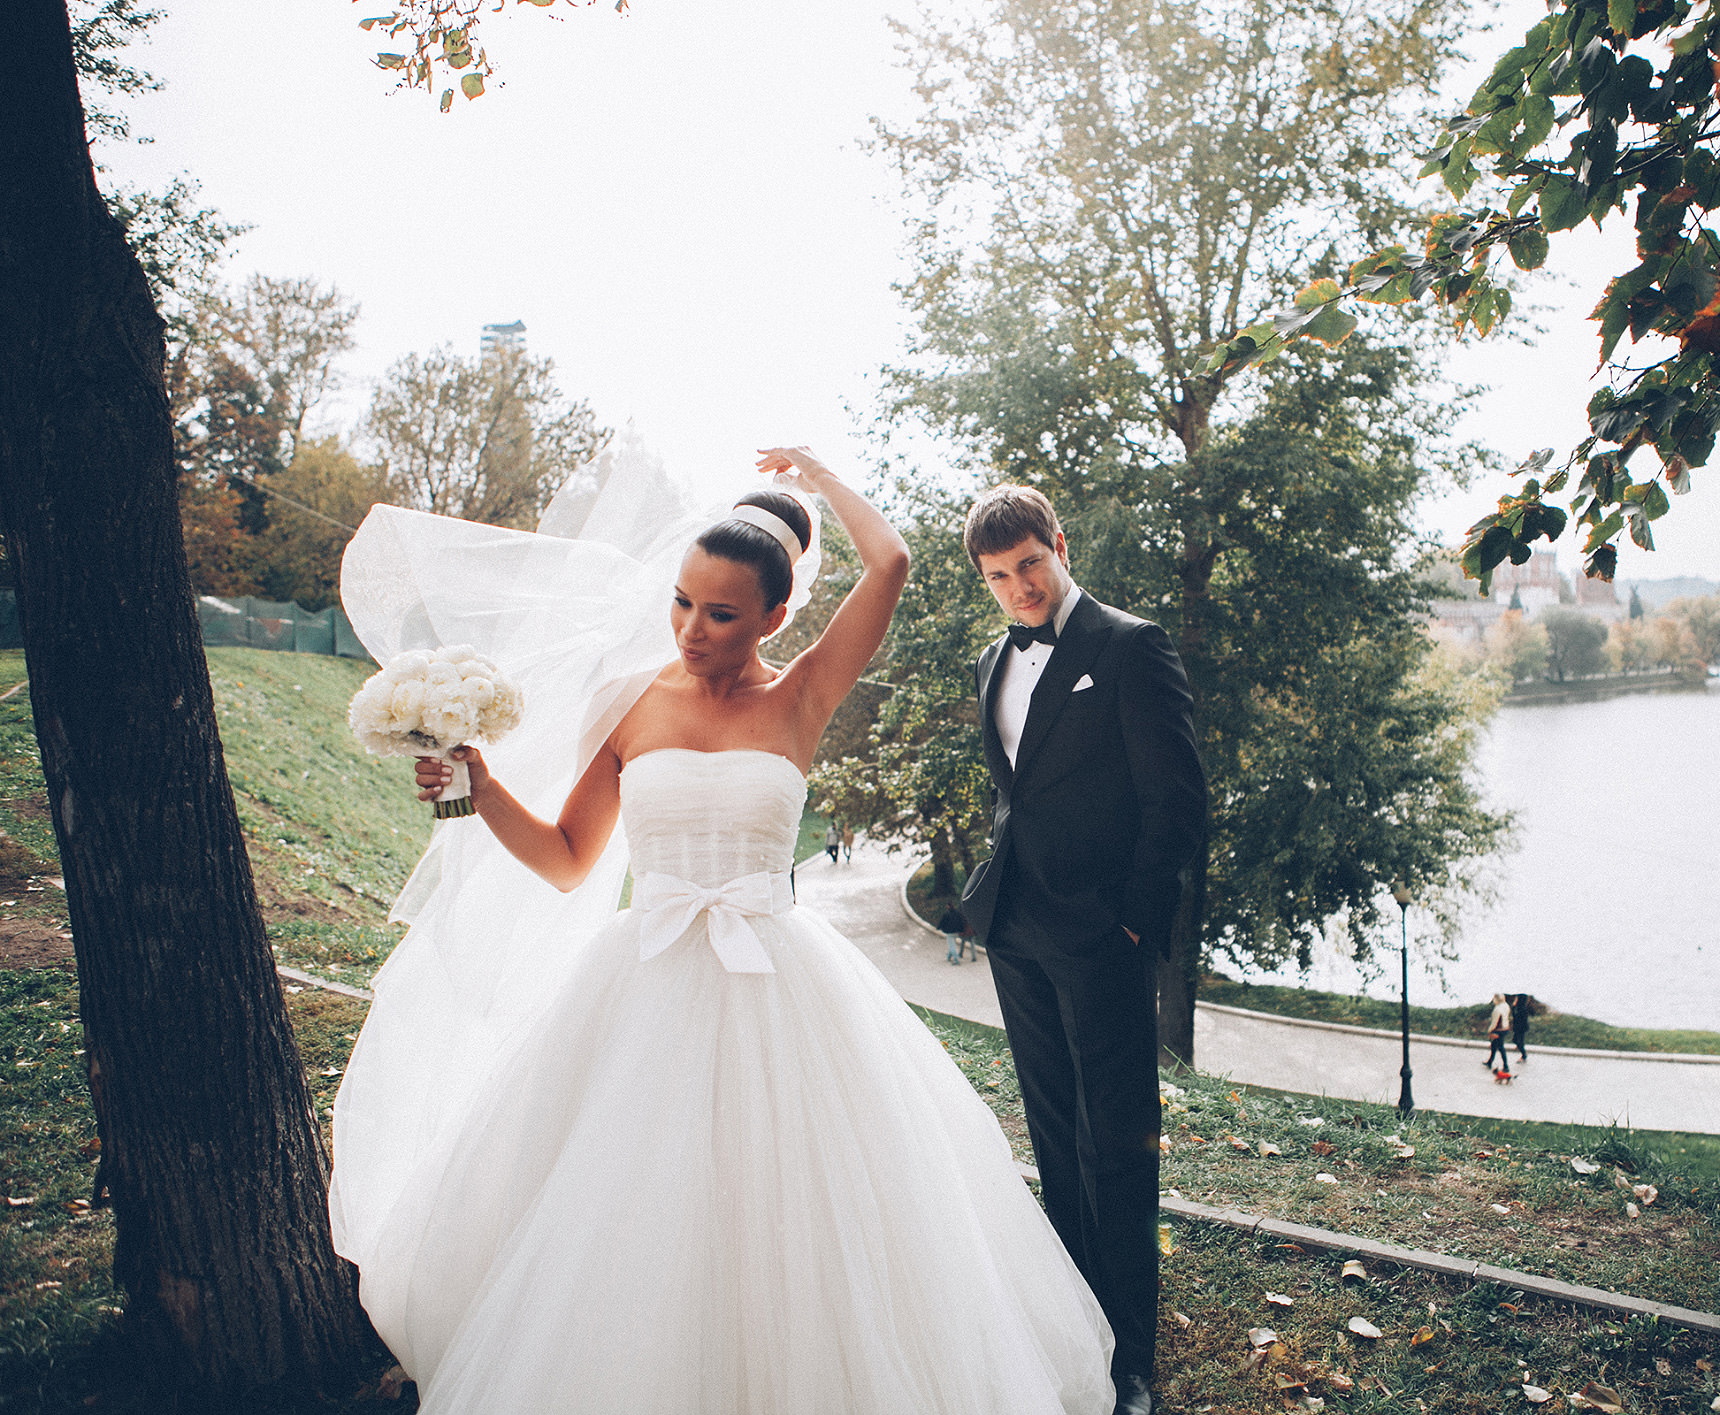 Chic Way to Choose an Eco-Friendly Wedding Dress